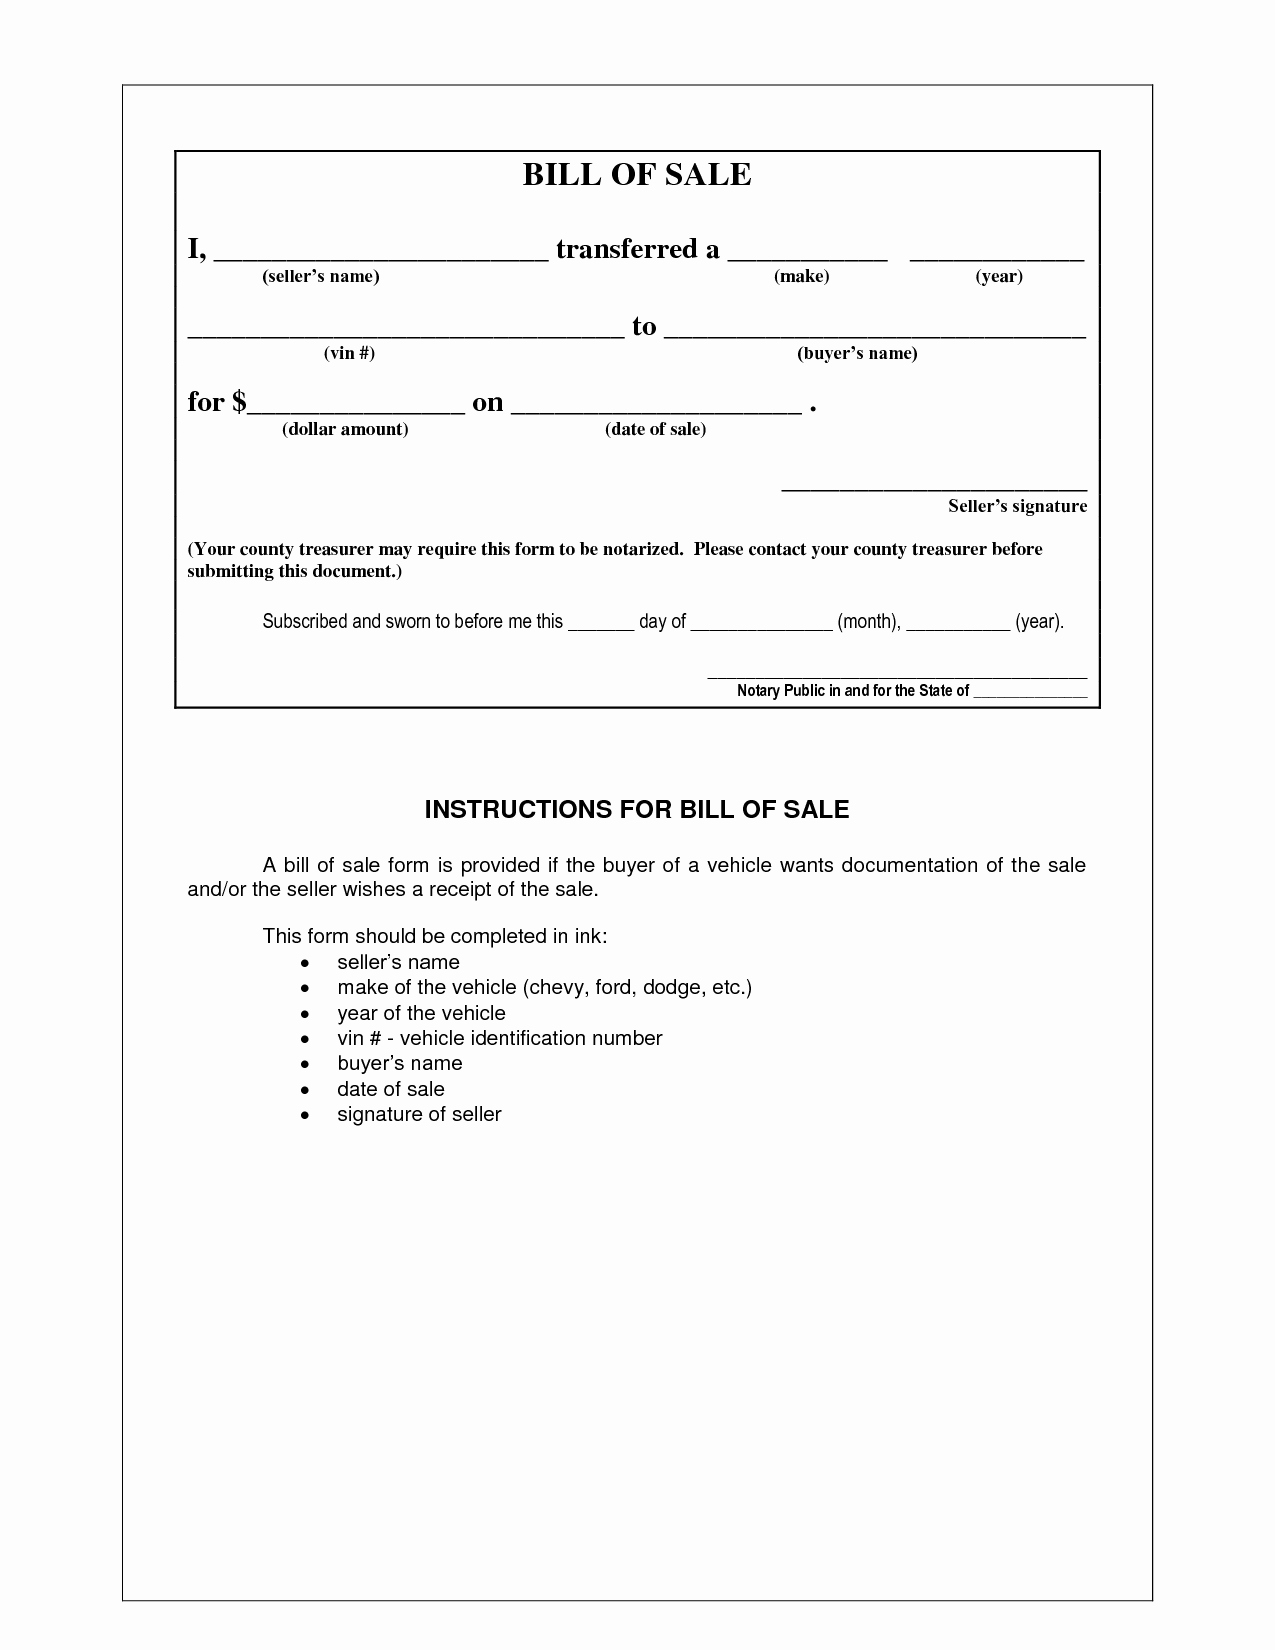 Bill Of Sale format Sample Elegant Picture 5 Of 17 Example Bill Sale form